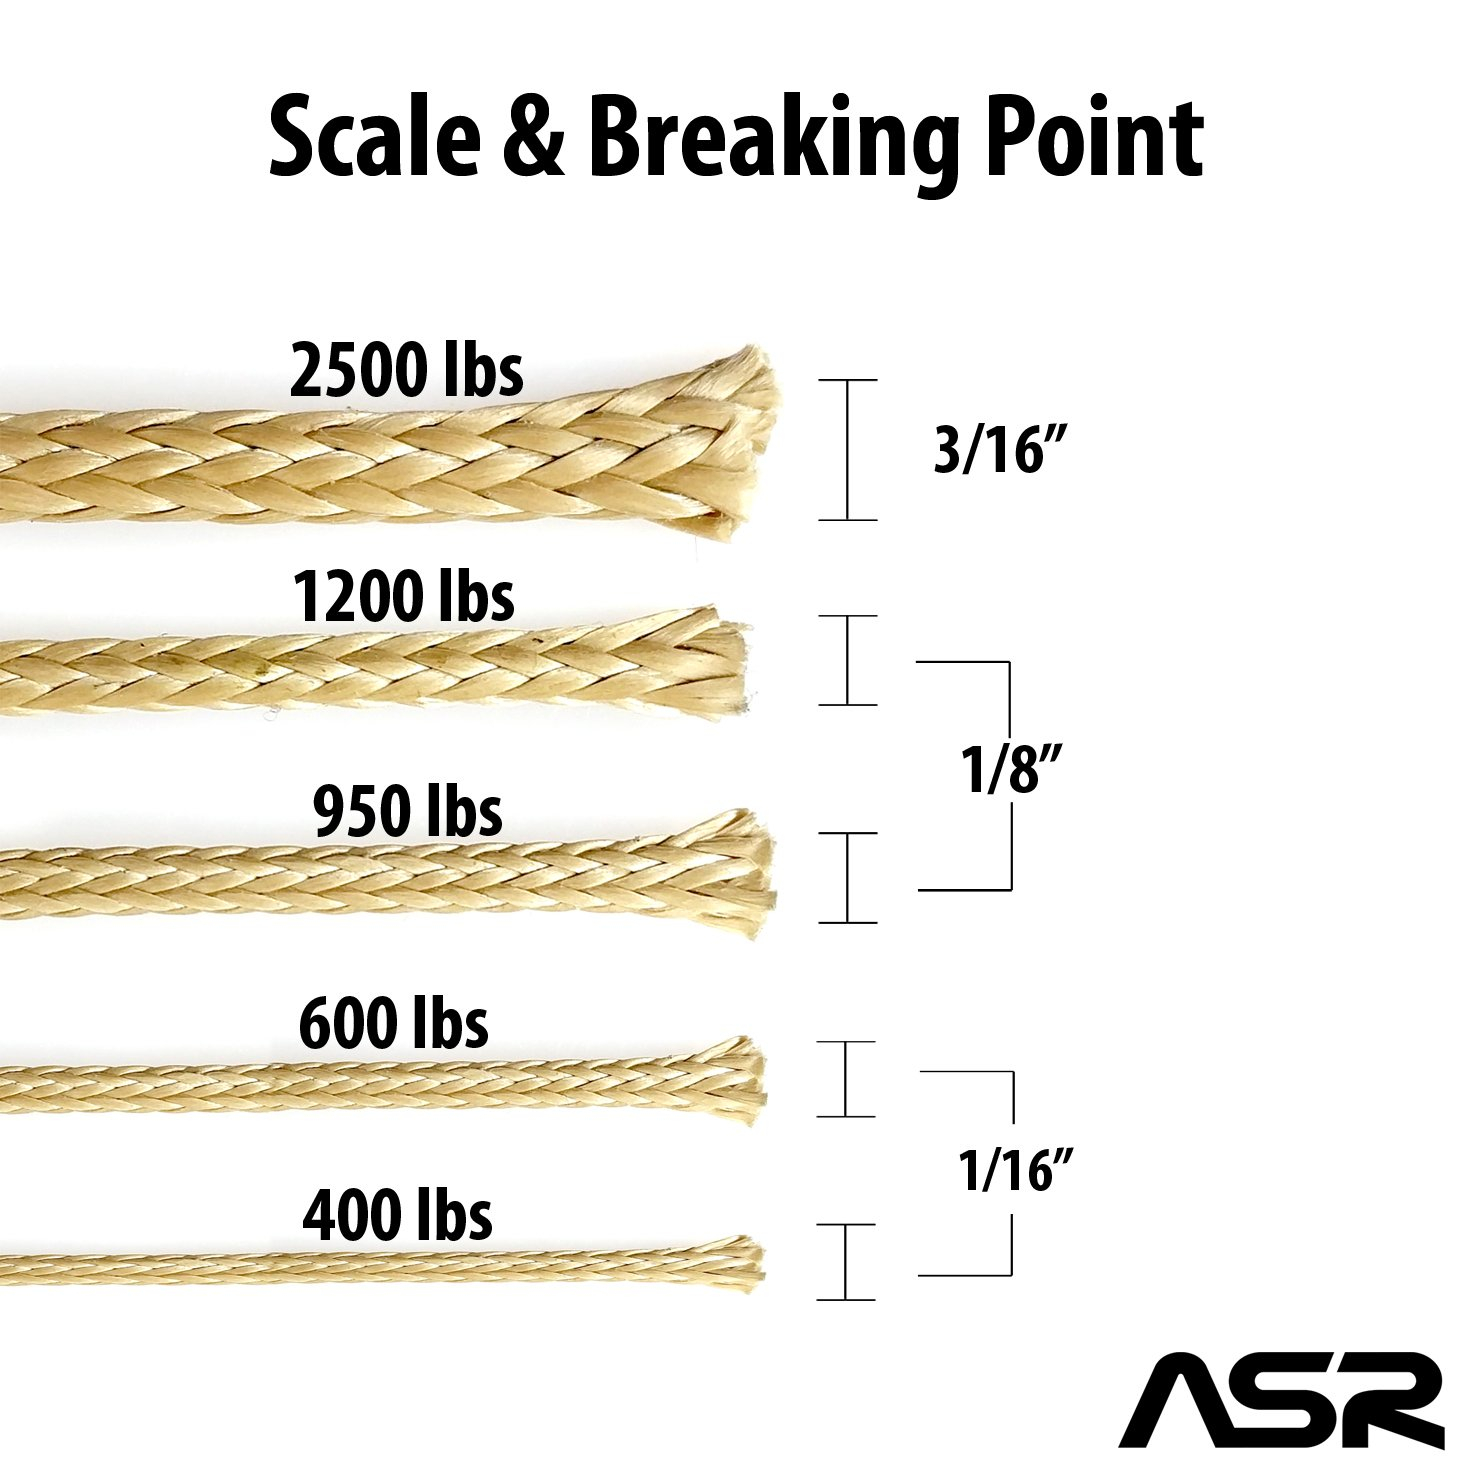 ASR-Outdoor-Braided-Technora-950lb-Survival-Rope-Natural-Many-Lengths thumbnail 12